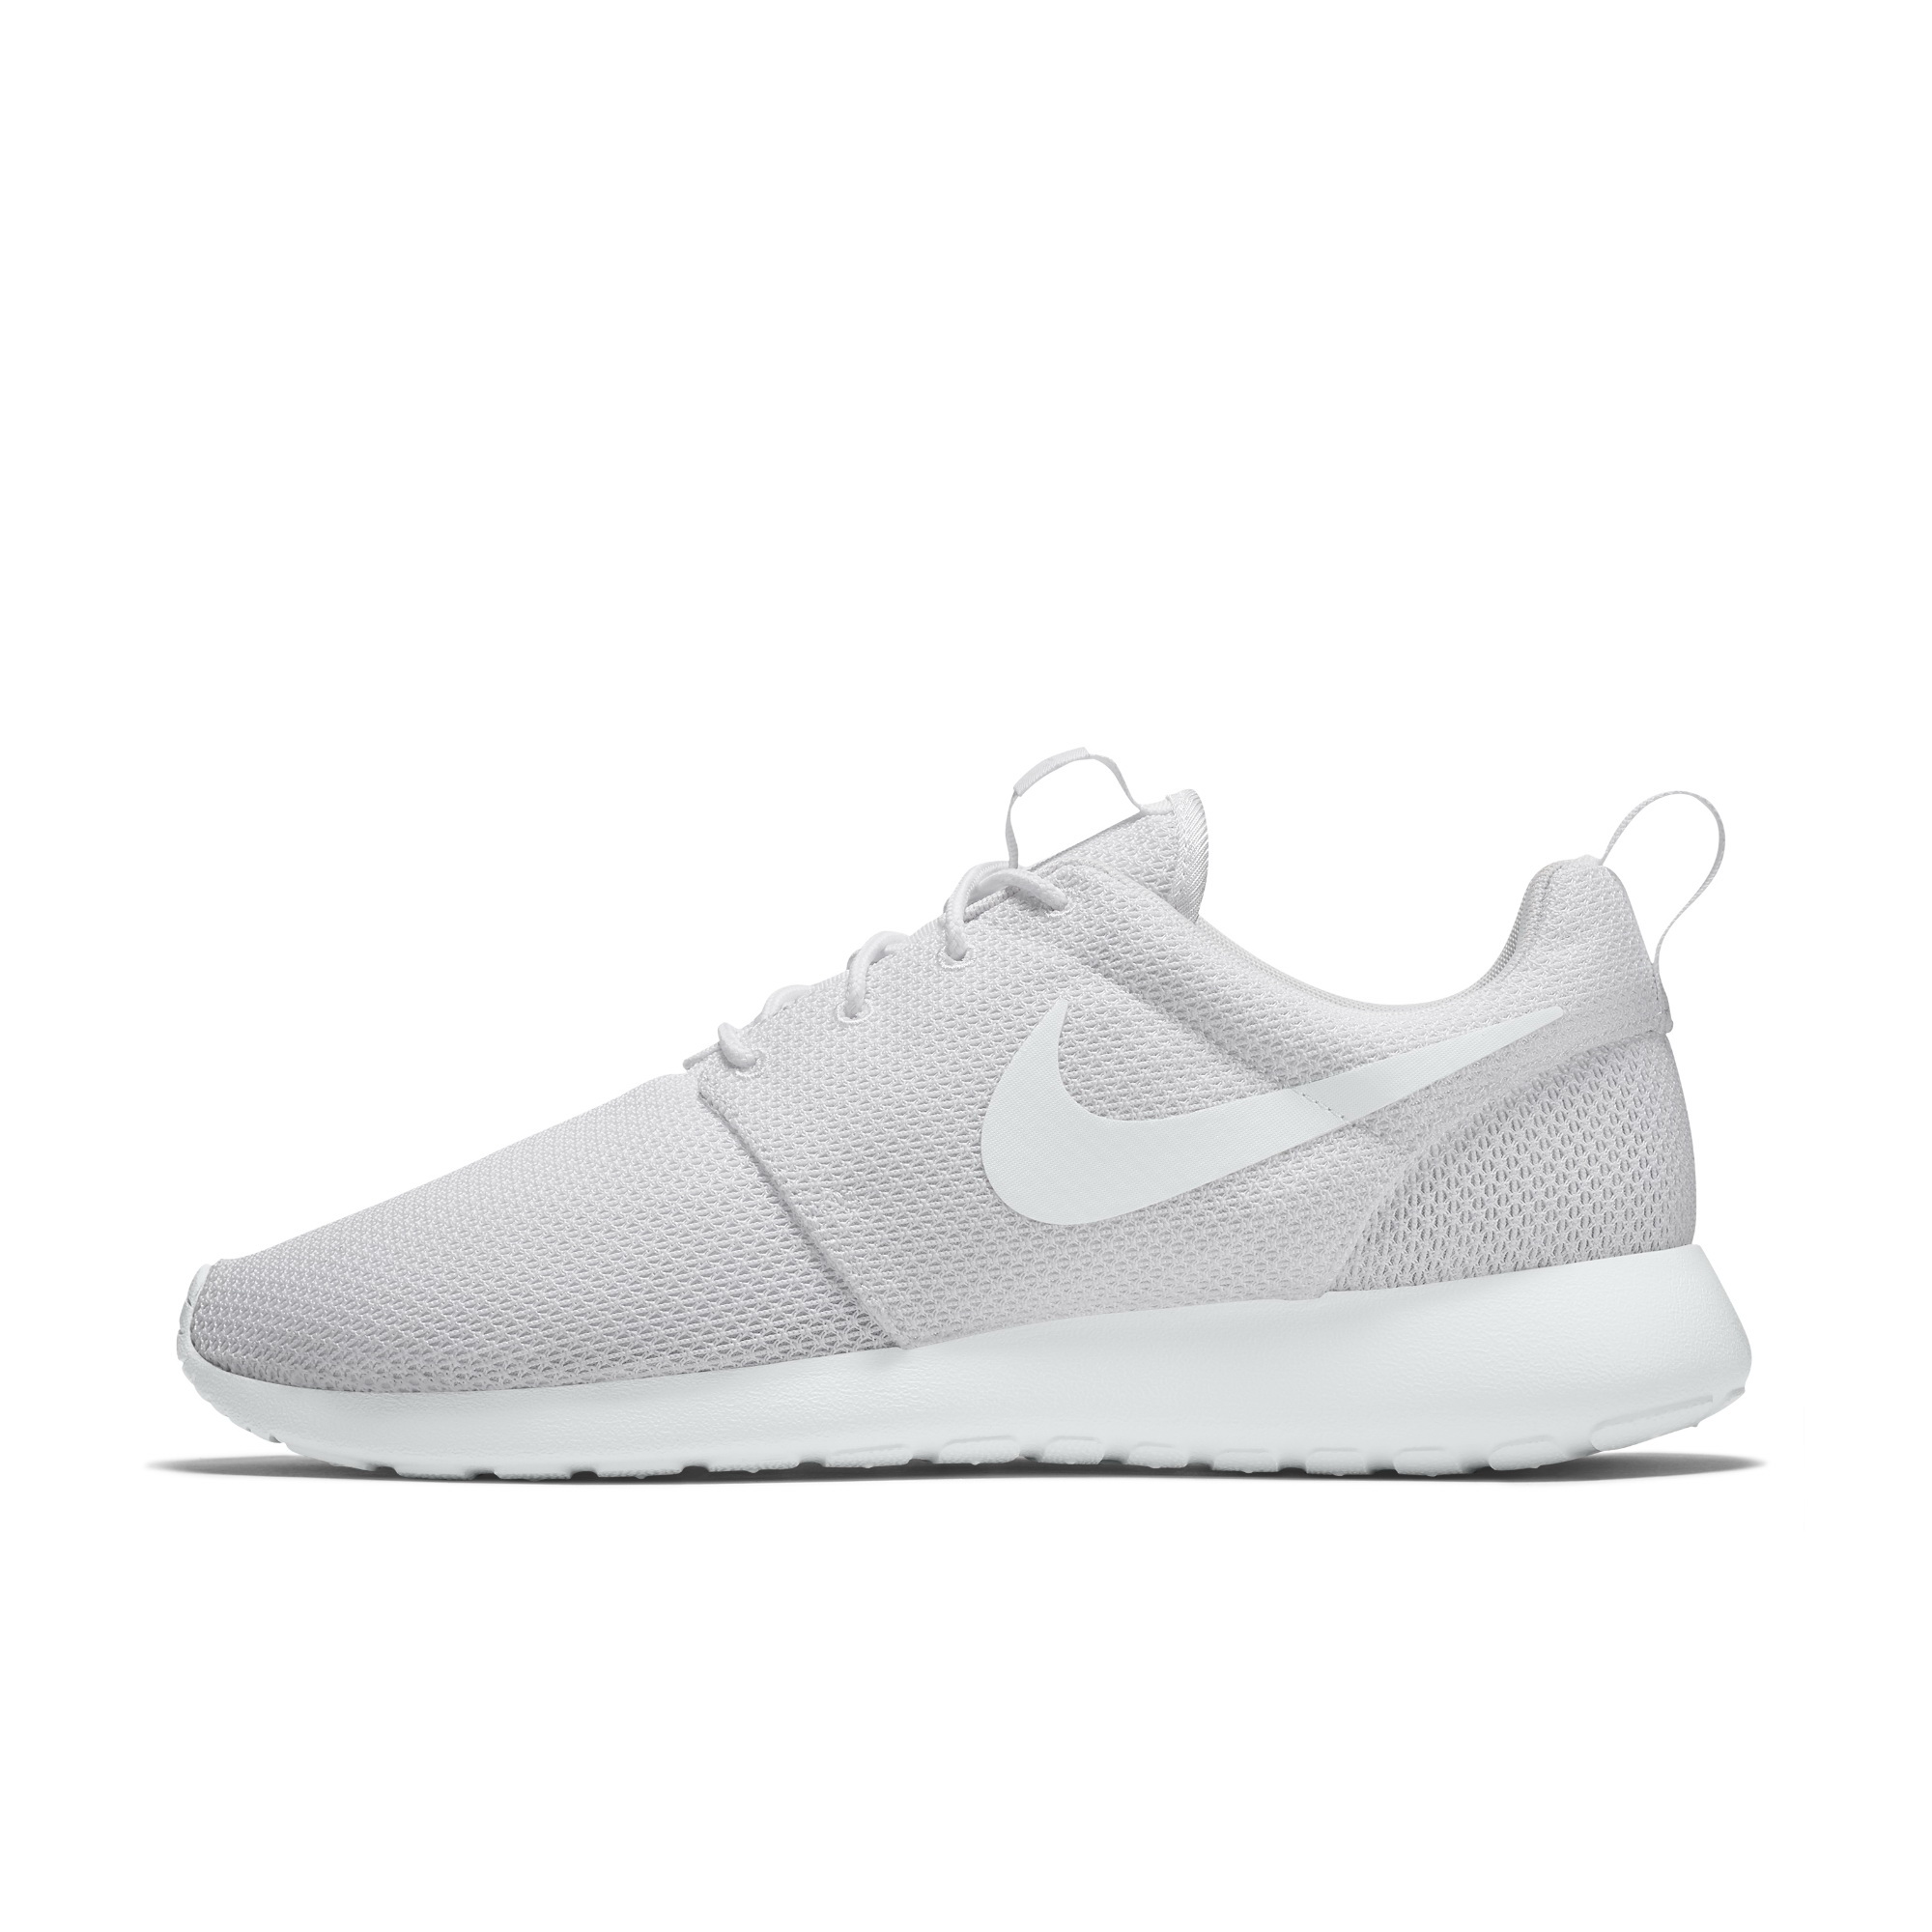 Nike Mens Roshe One Running Shoes White/White 511881-112 Size 10